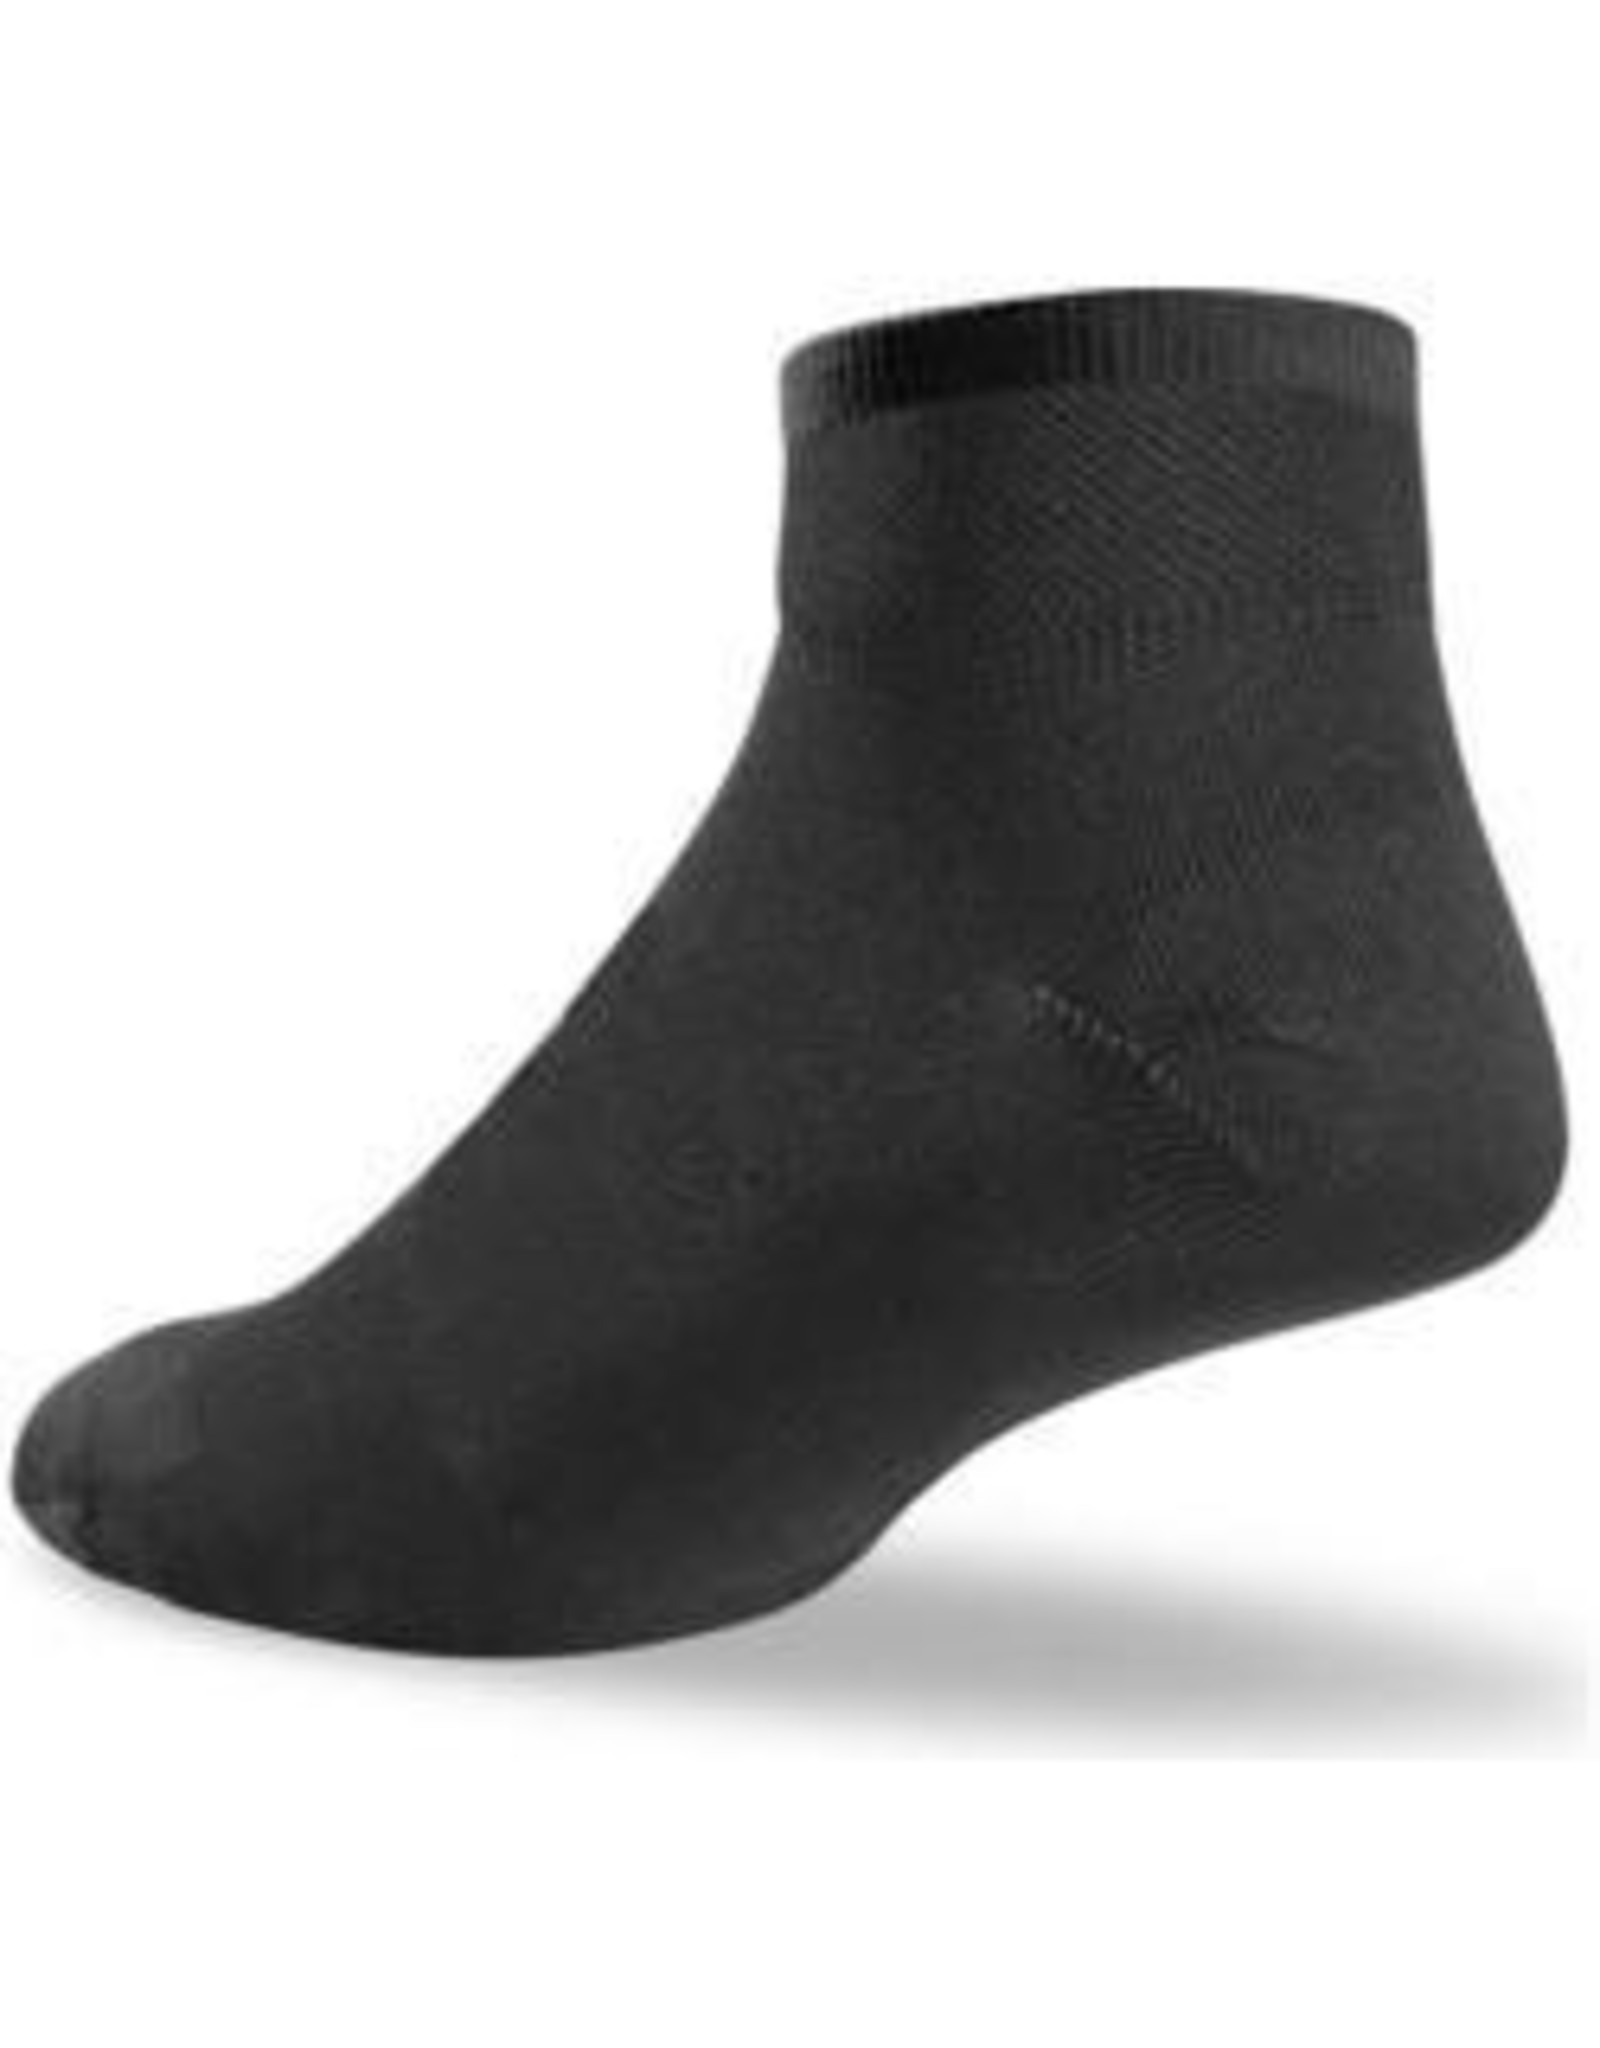 SPECIALIZED Specialized Sport Low Sock 3-Pack - Black - Small